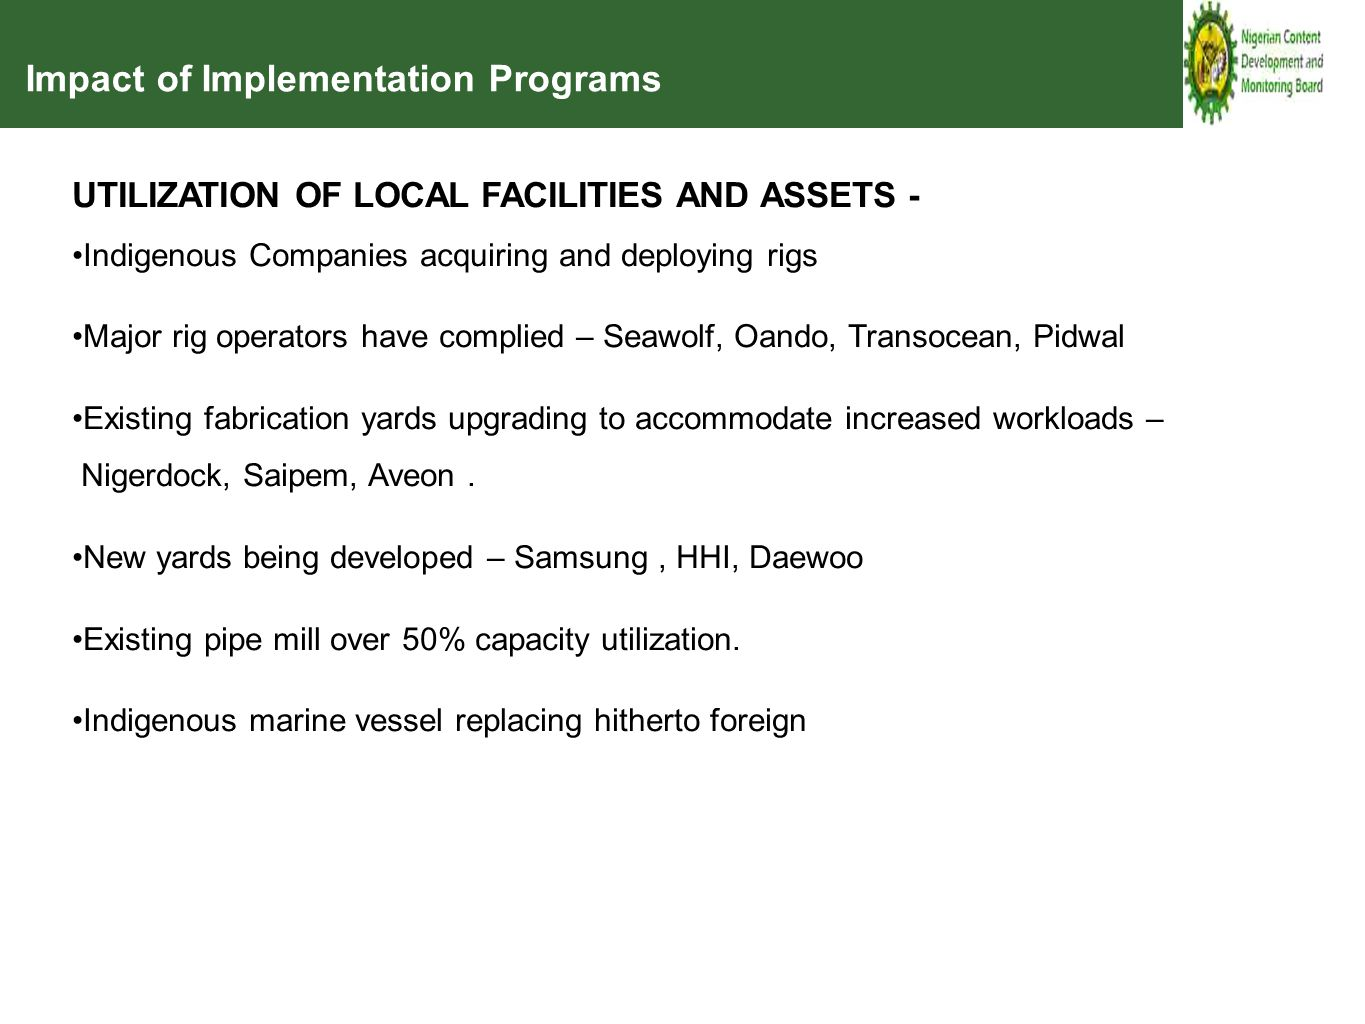 Impact of Implementation Programs UTILIZATION OF LOCAL FACILITIES AND ASSETS - Indigenous Companies acquiring and deploying rigs Major rig operators have complied – Seawolf, Oando, Transocean, Pidwal Existing fabrication yards upgrading to accommodate increased workloads – Nigerdock, Saipem, Aveon.